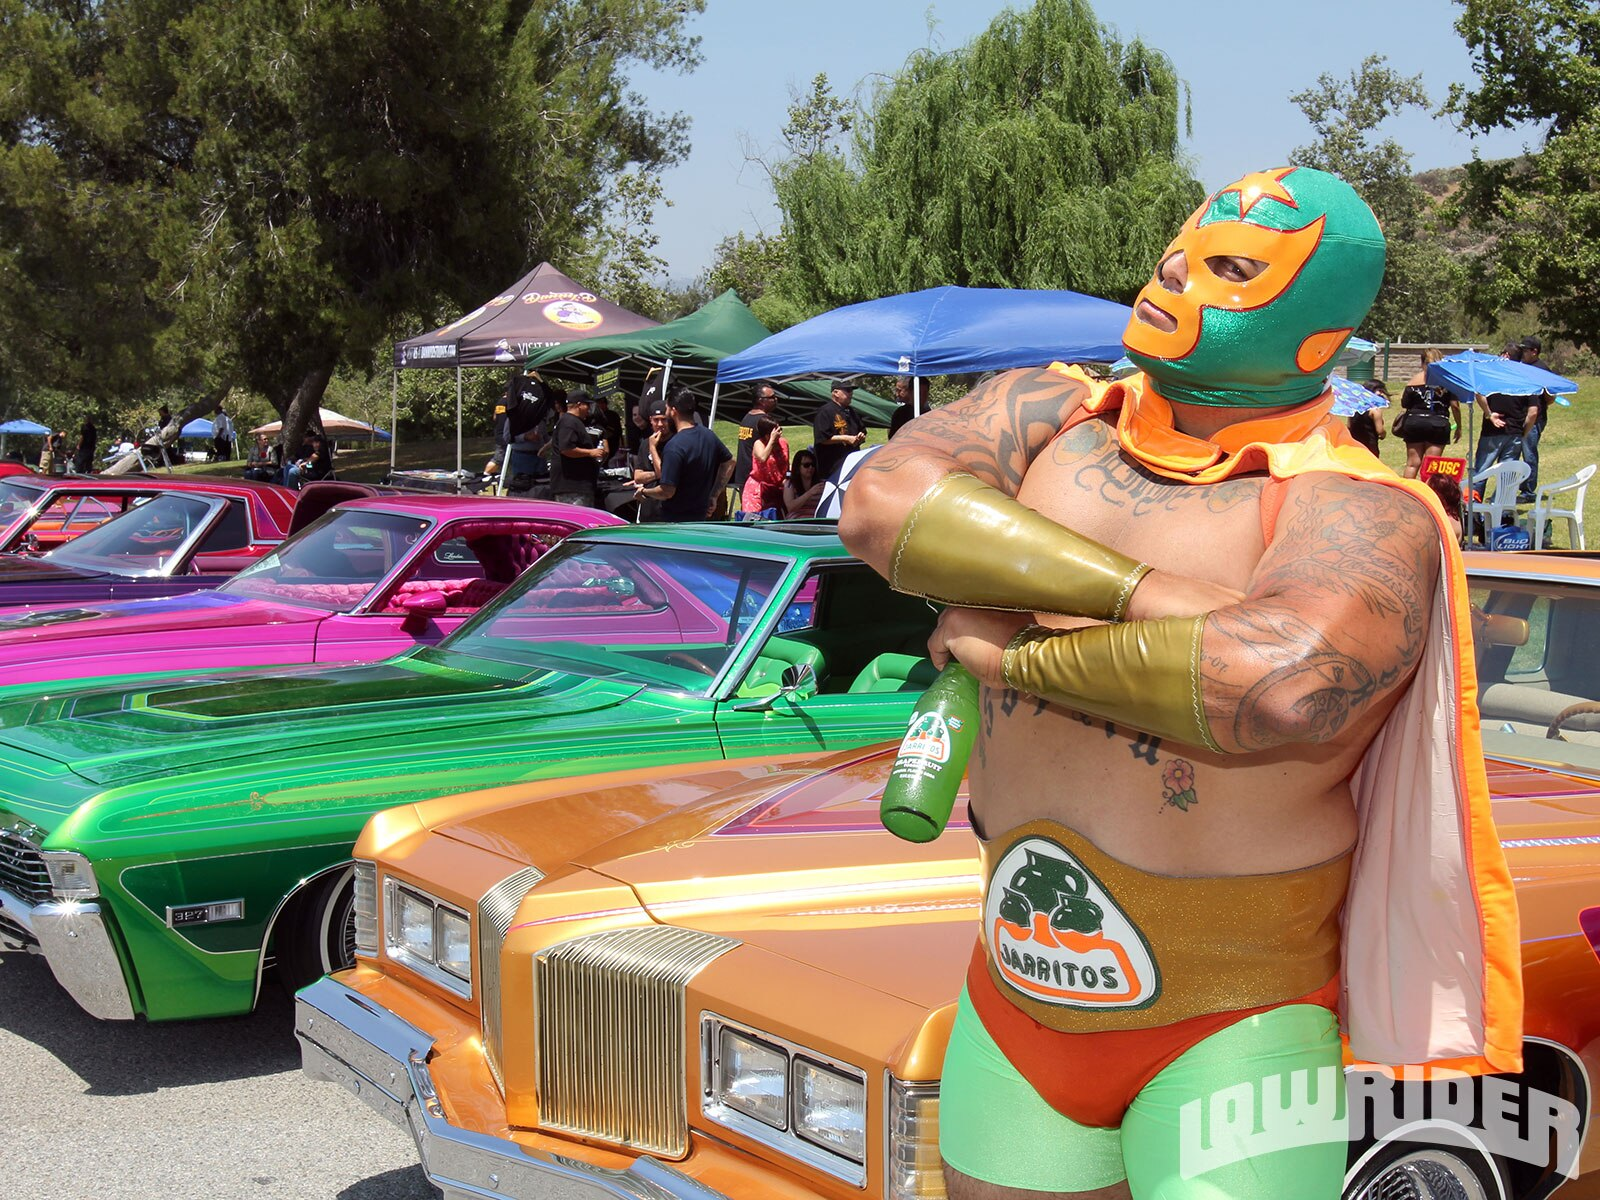 10th-annual-bbq-and-show-jarritos-costume2